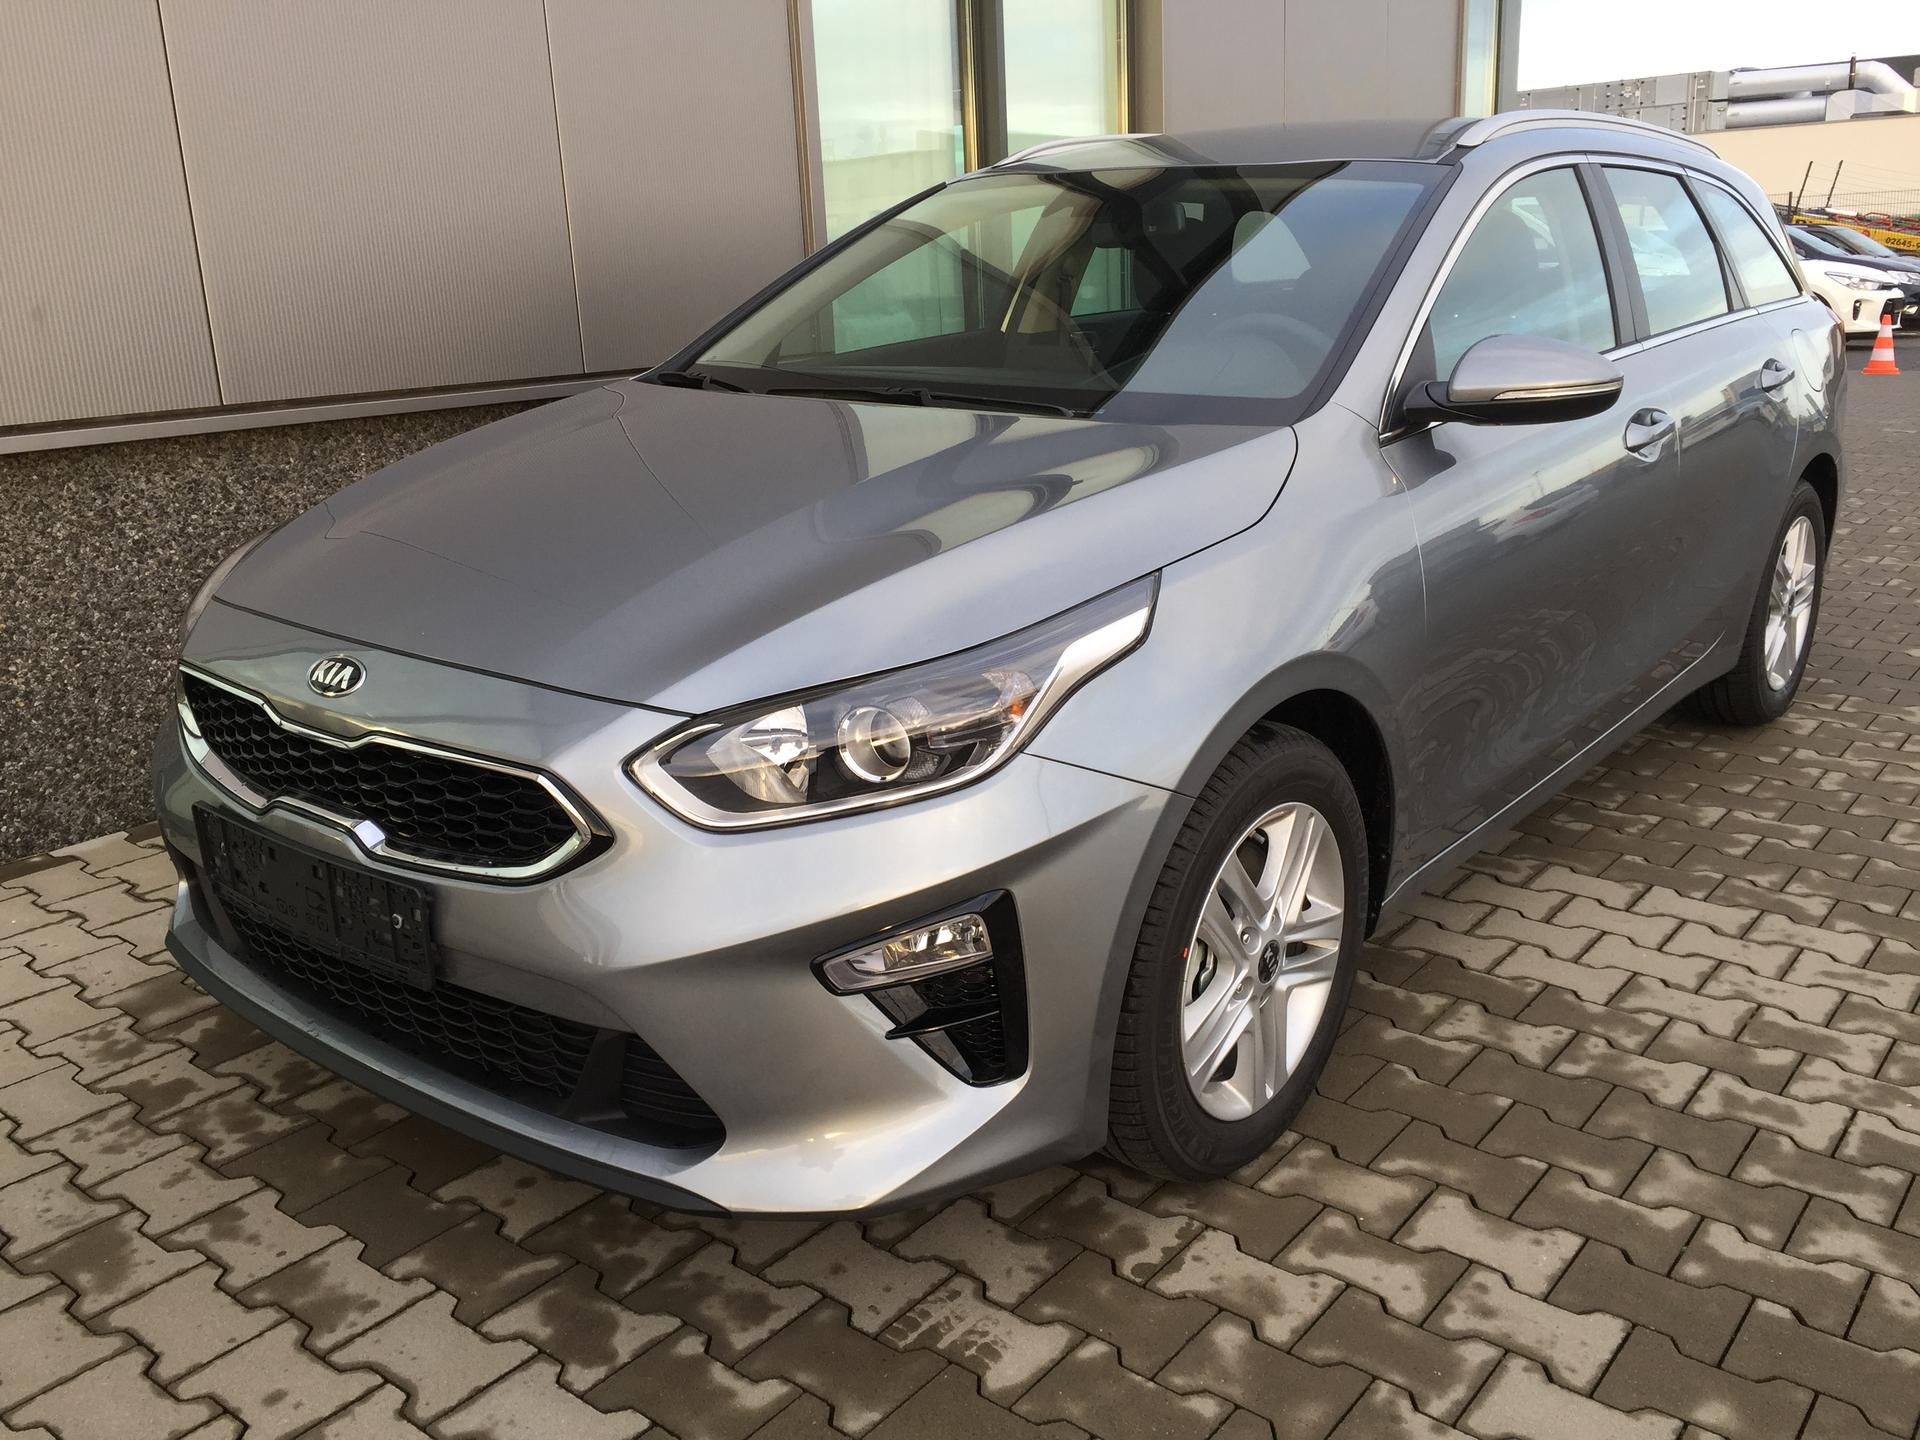 kia ceed sportswagon silver 2 neues modell dachreling. Black Bedroom Furniture Sets. Home Design Ideas